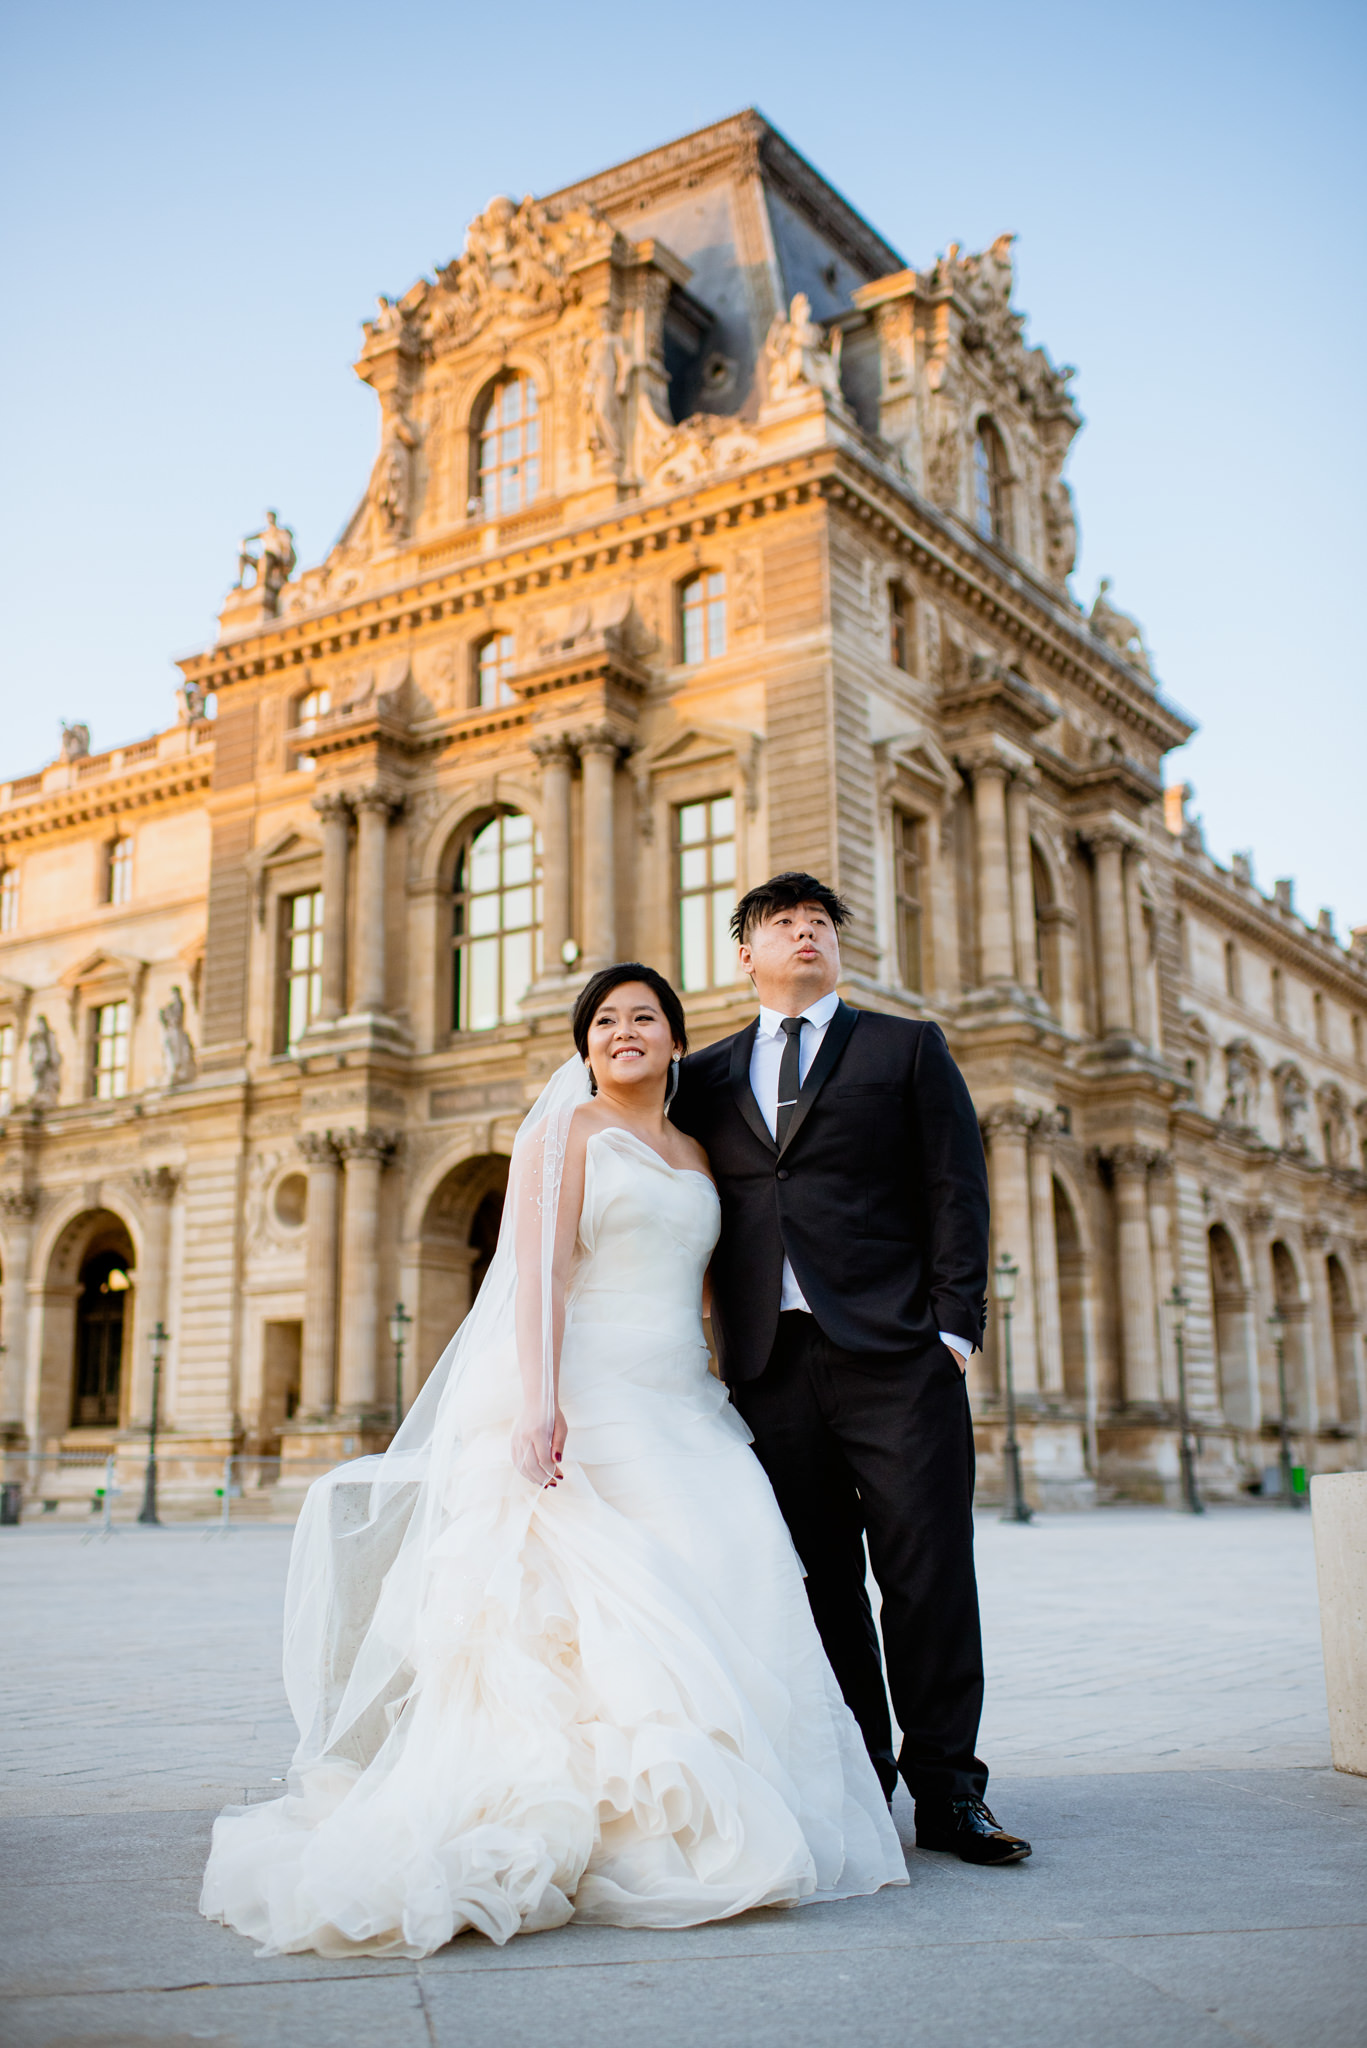 Asian bride and groom pose together in front of the Louvre.